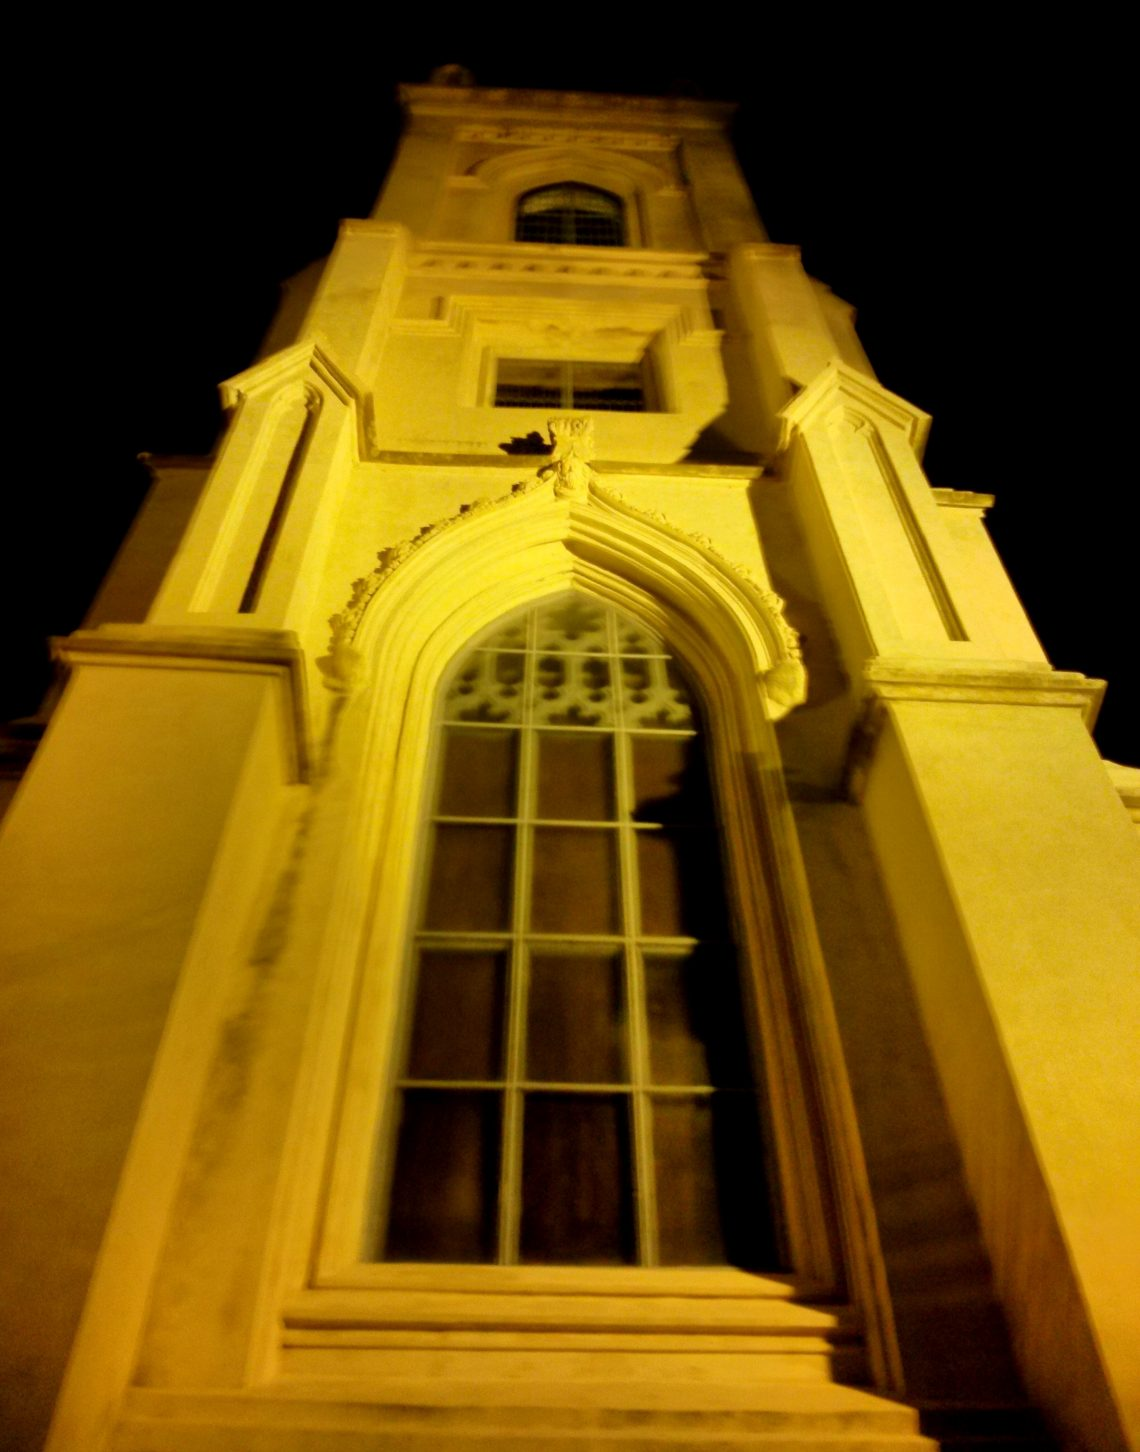 The steeple of the Unitarian Church looks beautiful, and a bit spooky, at night. The construction of the church began in 1772 and wasn't completed until 1787 -- as work was suspended for the duration of the British occupation of Charleston during the Revolutionary War.